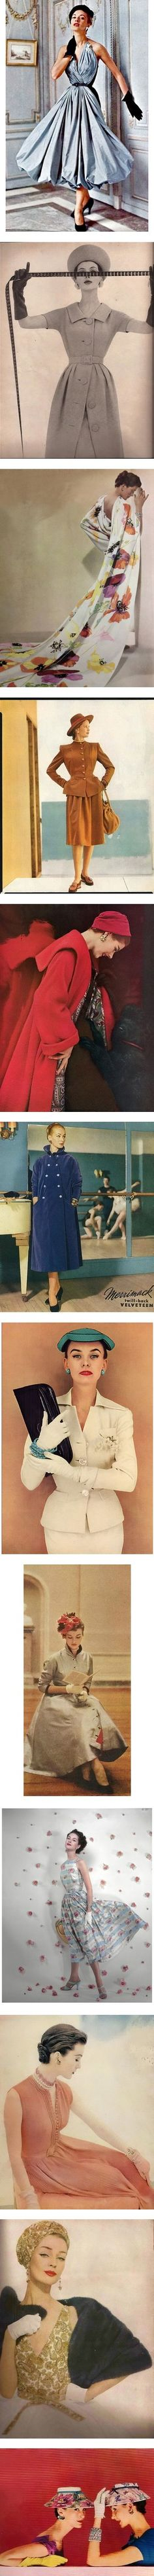 """""""1950s Fashion"""" by hesterprynne ❤ liked on Polyvore"""